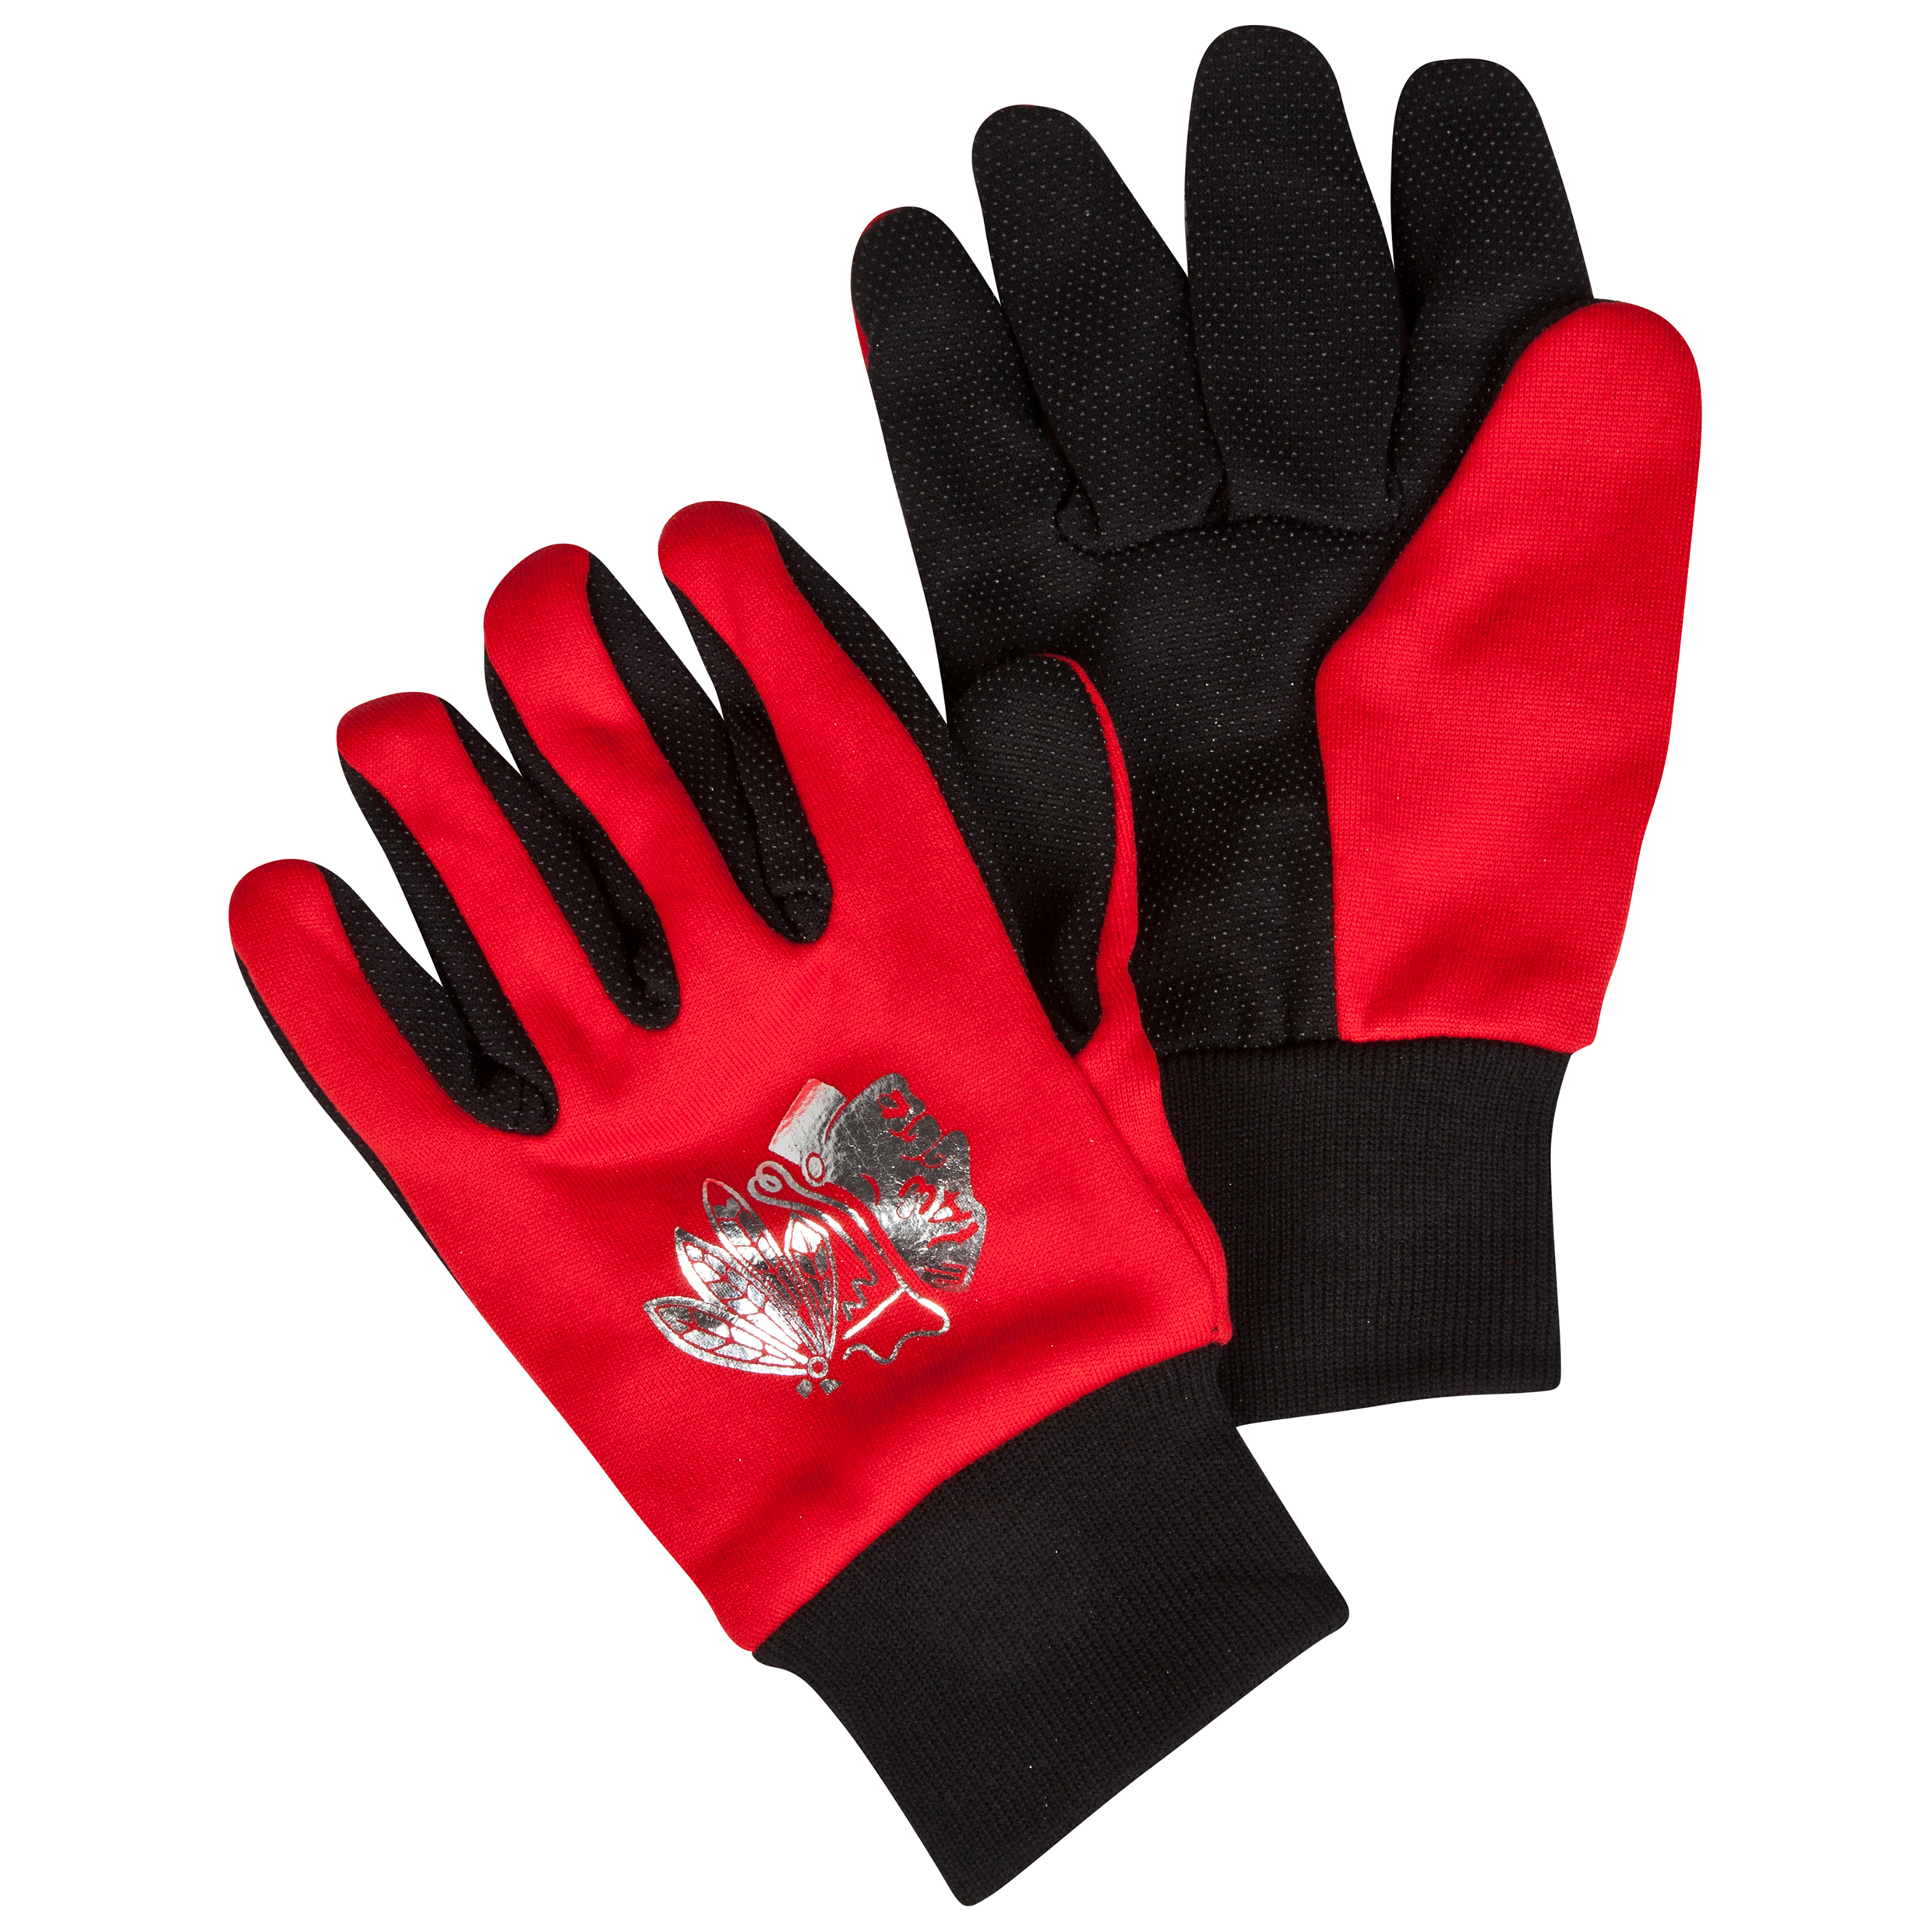 Chicago Blackhawks Foil Print Glove